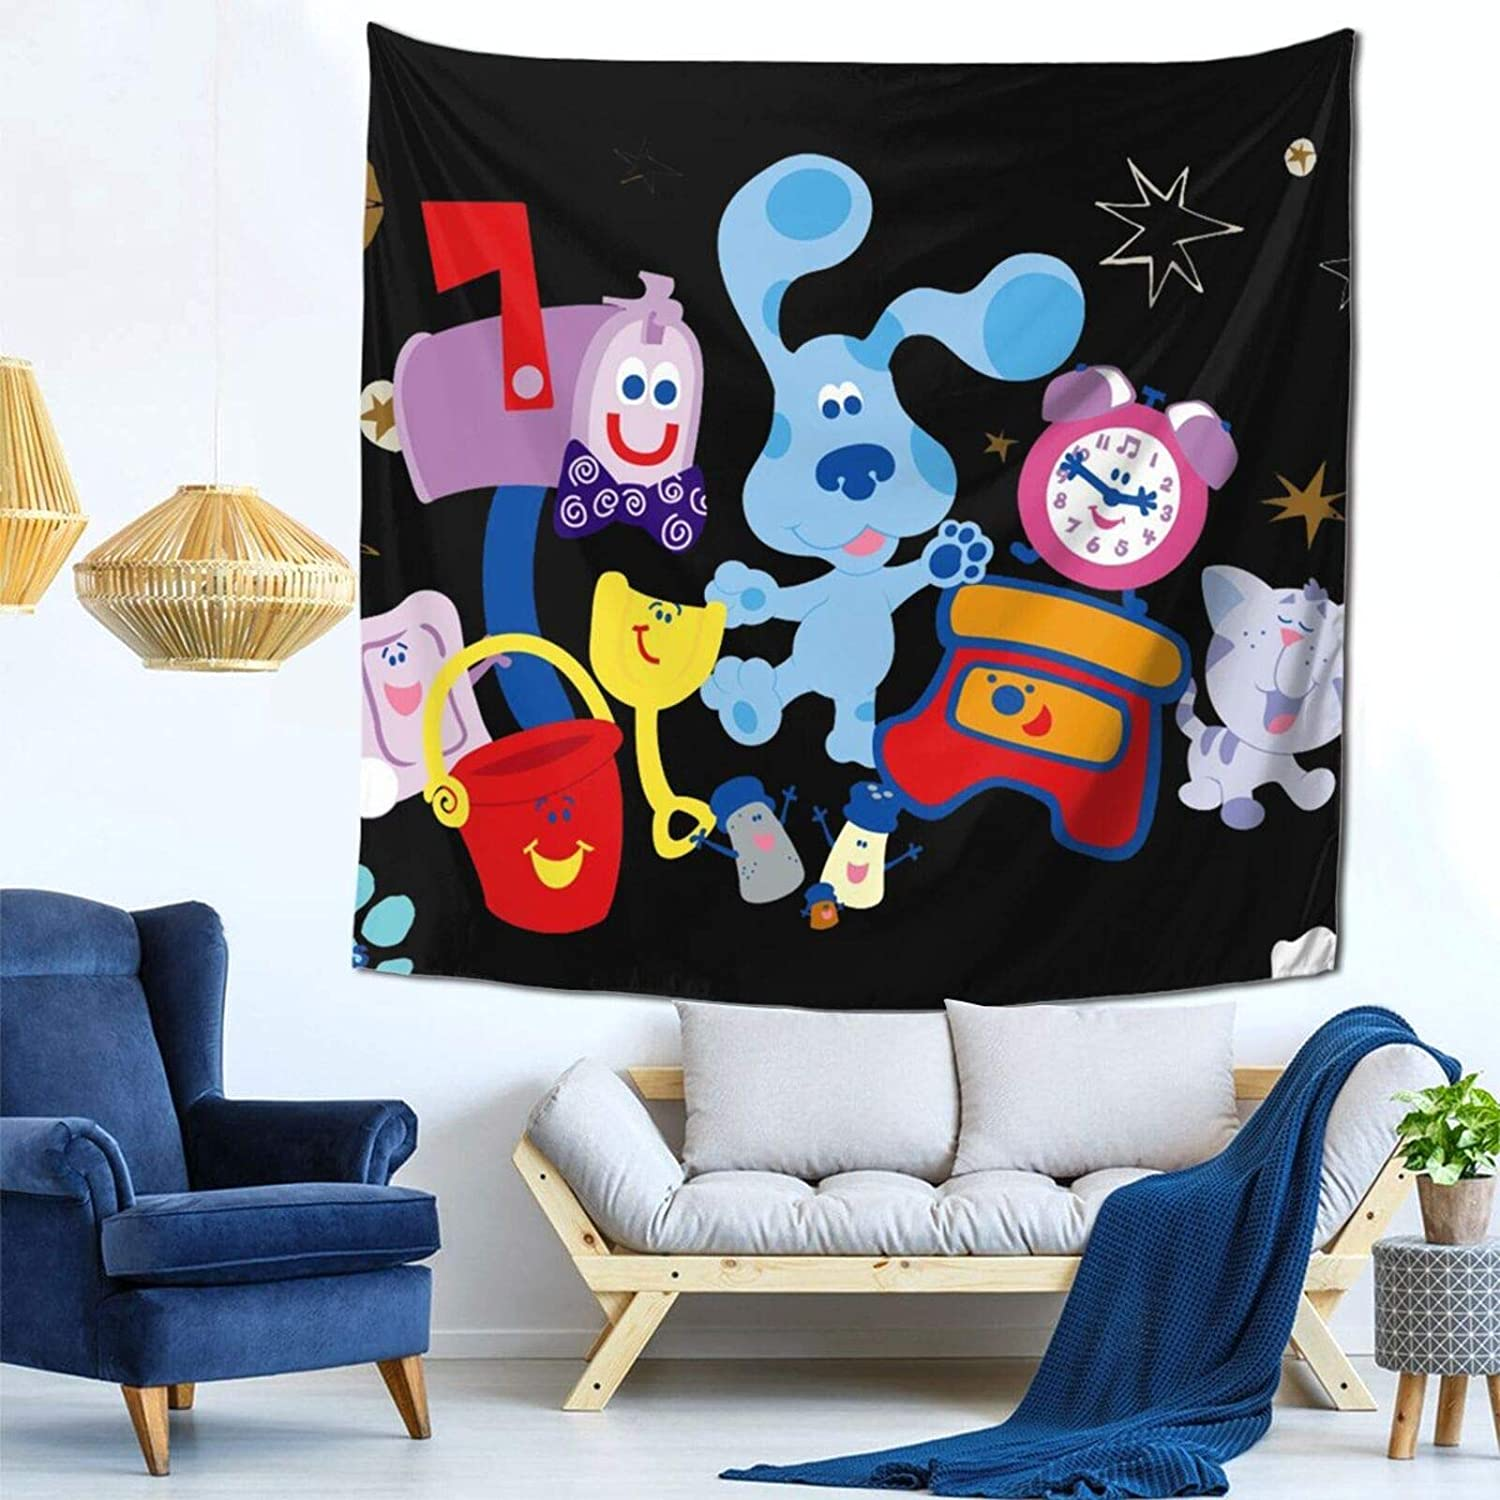 Cute Dog Bl-Ue'S Cl-Ues Tapestry Wall Hanging Wall Art Hippie Tapestry Boho Room Decor 59 X 59 Inch